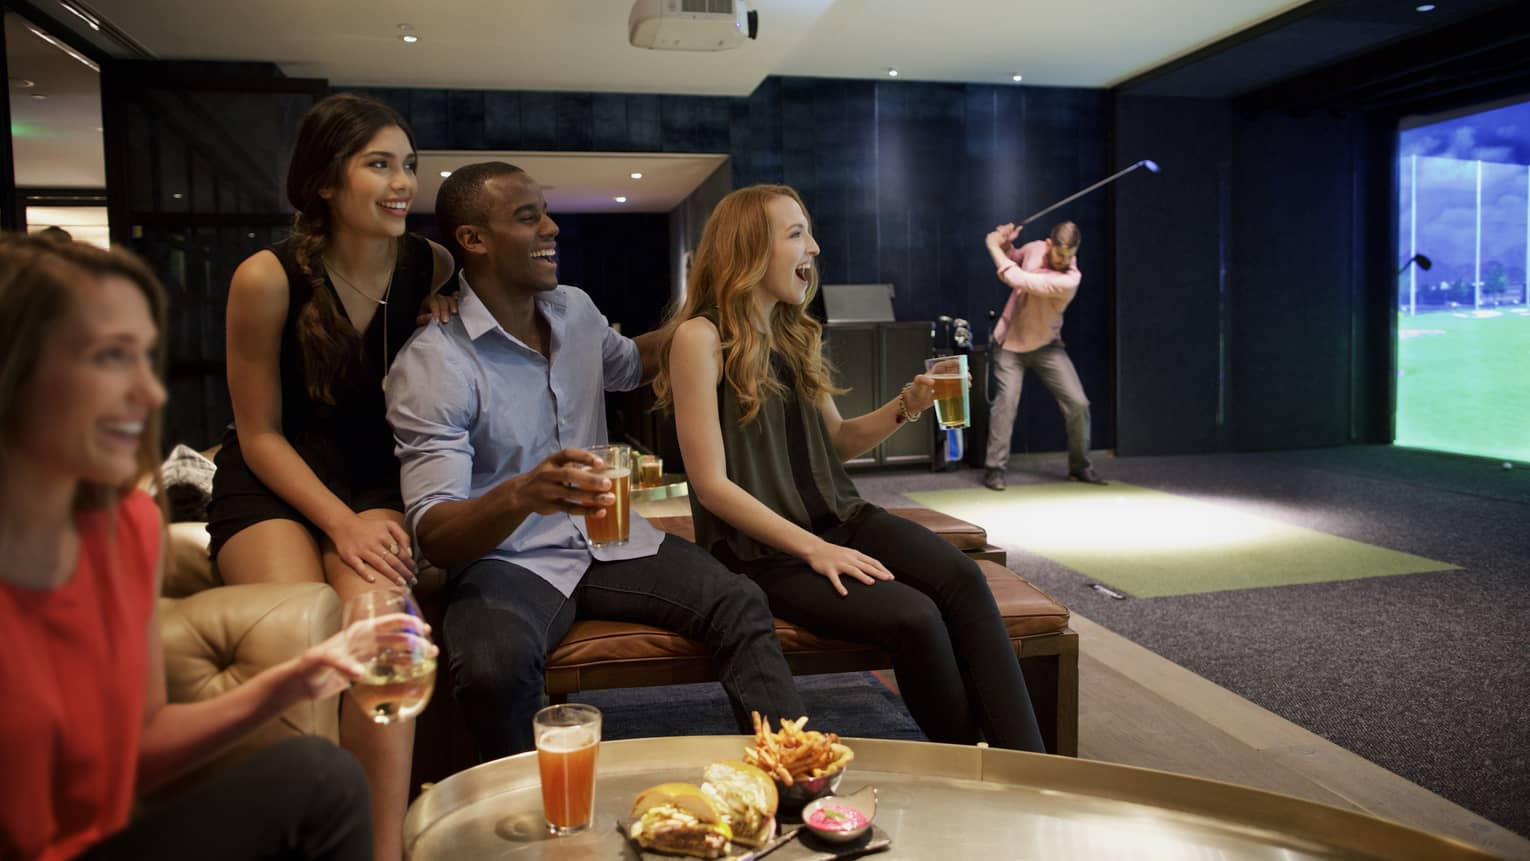 A man and three woman sip beer and cheer on a sports team in the foreground, while another man golfs in the background of a function room at four seasons hotel houston